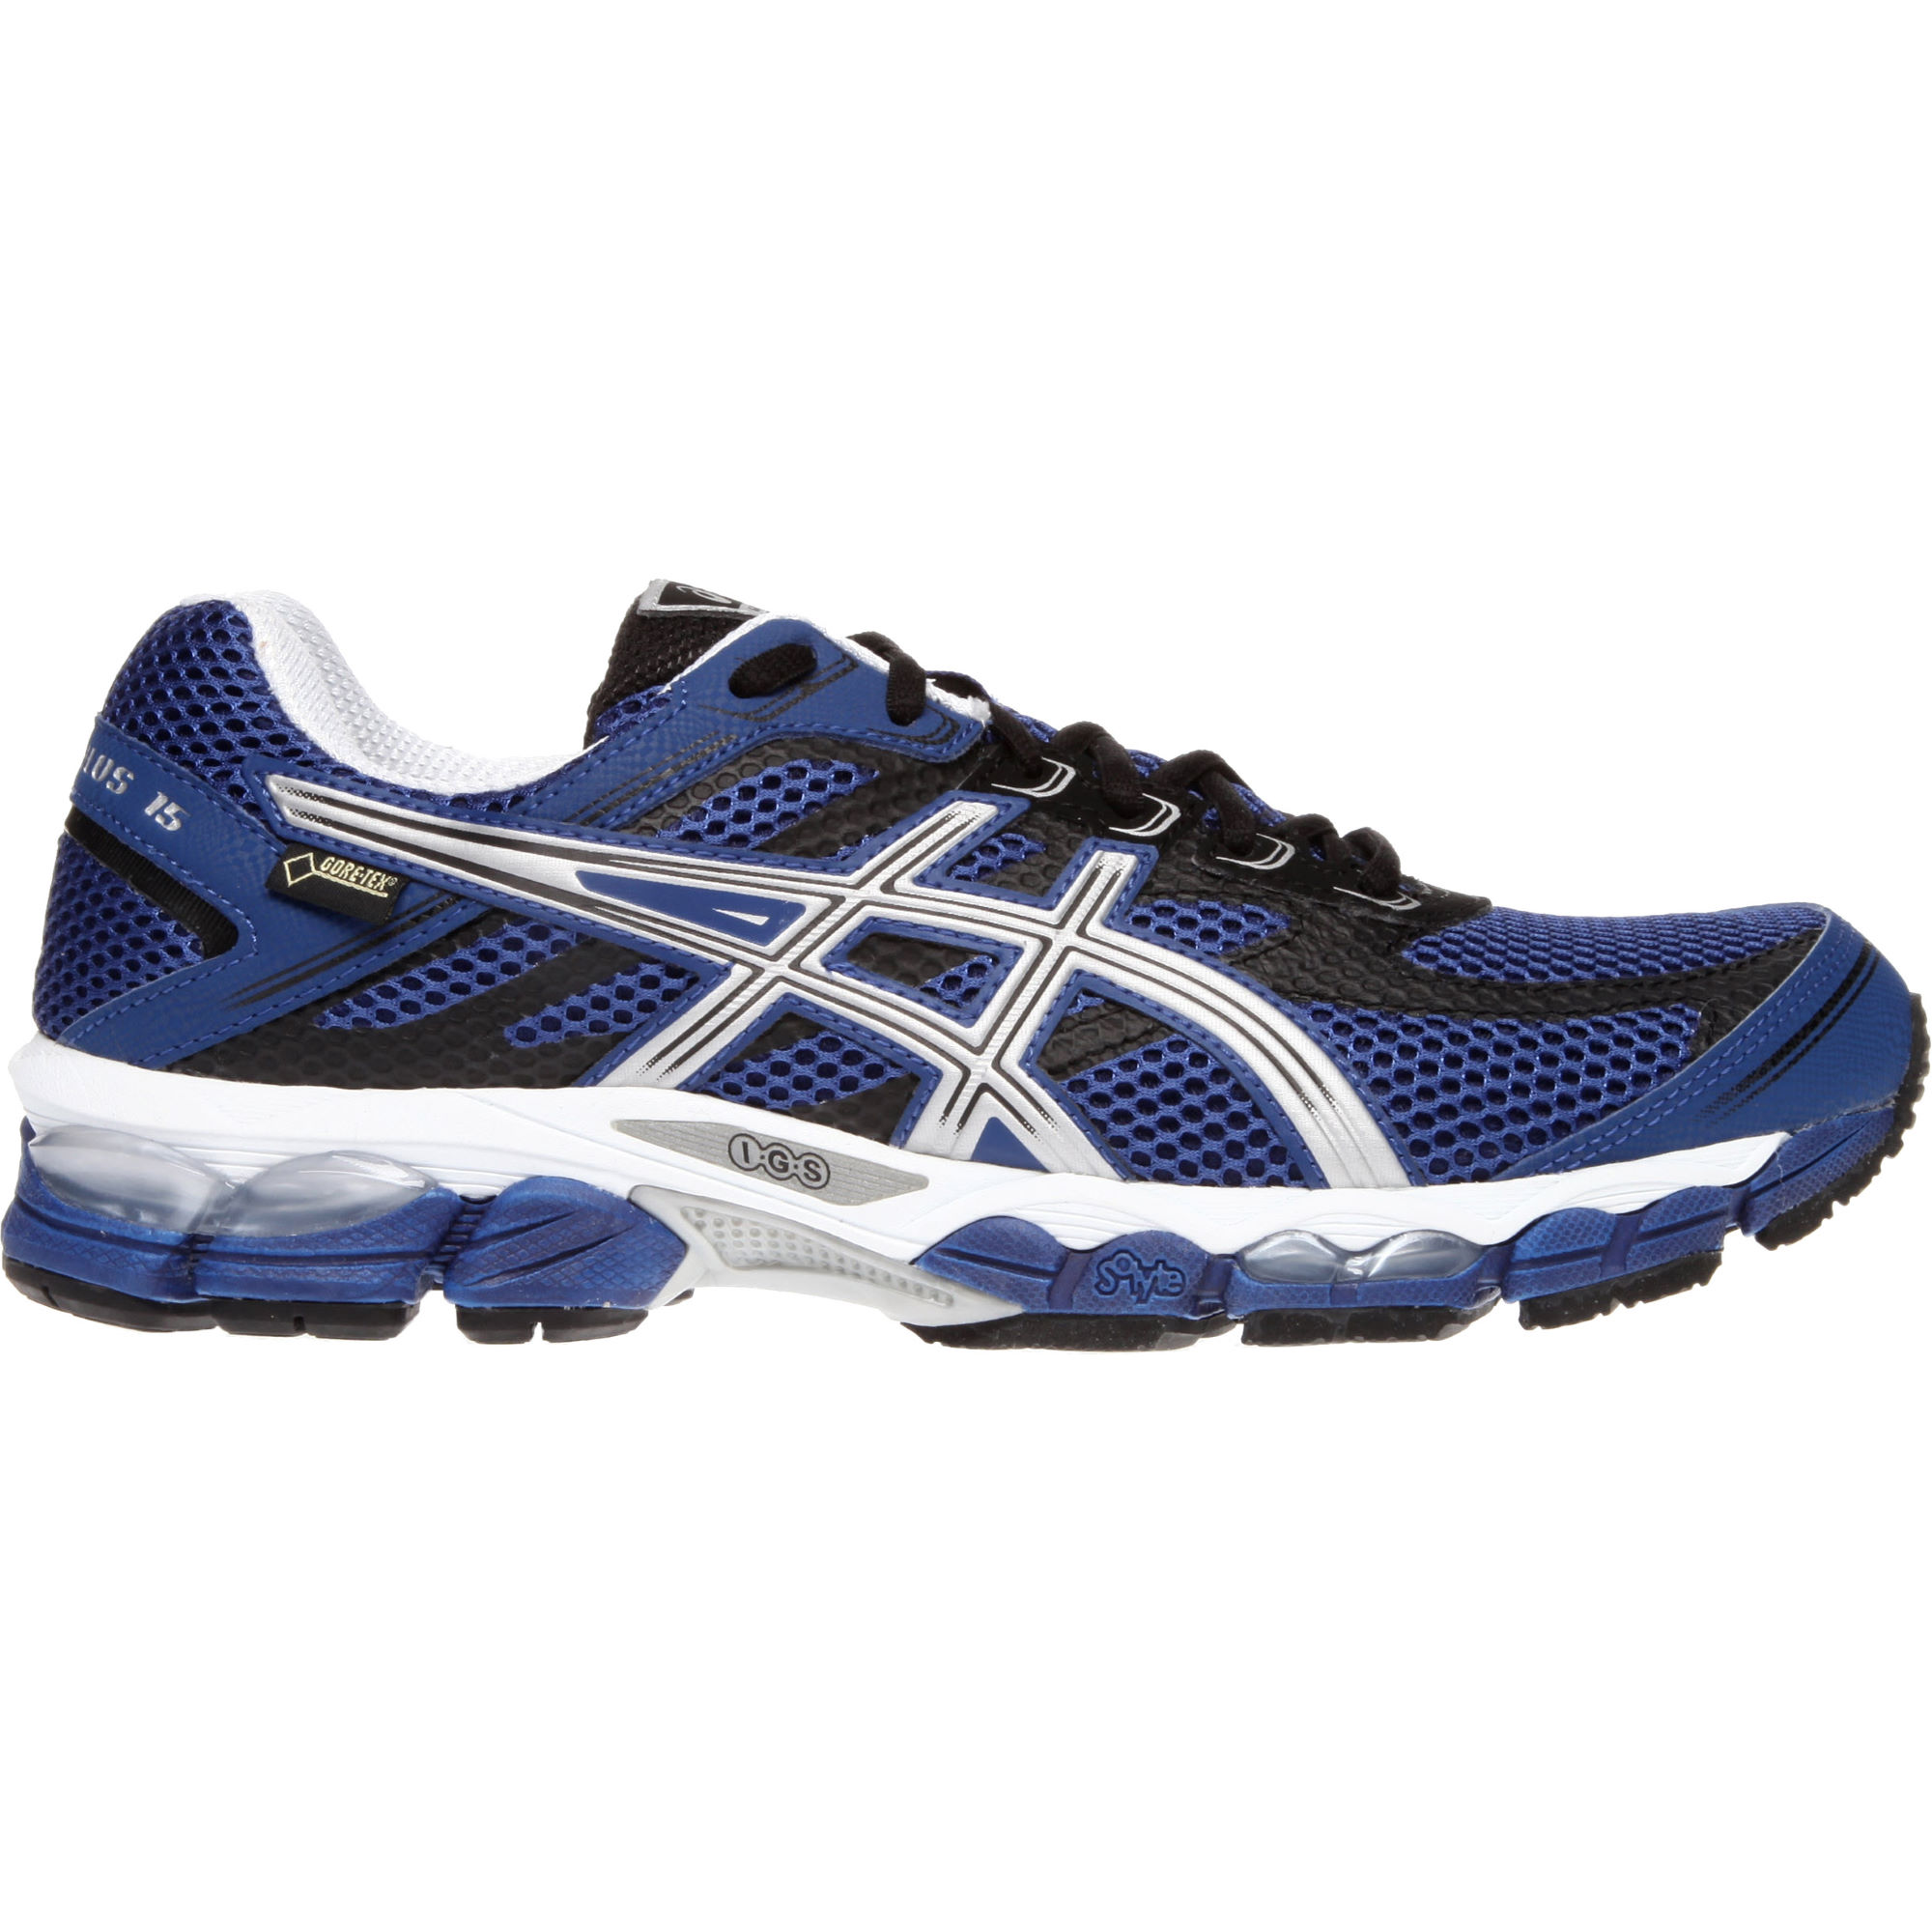 Zapatillas asics running 2014 zapatillas running asics gel - Asics Gel Cumulus 15 Goretex Shoes Ss14